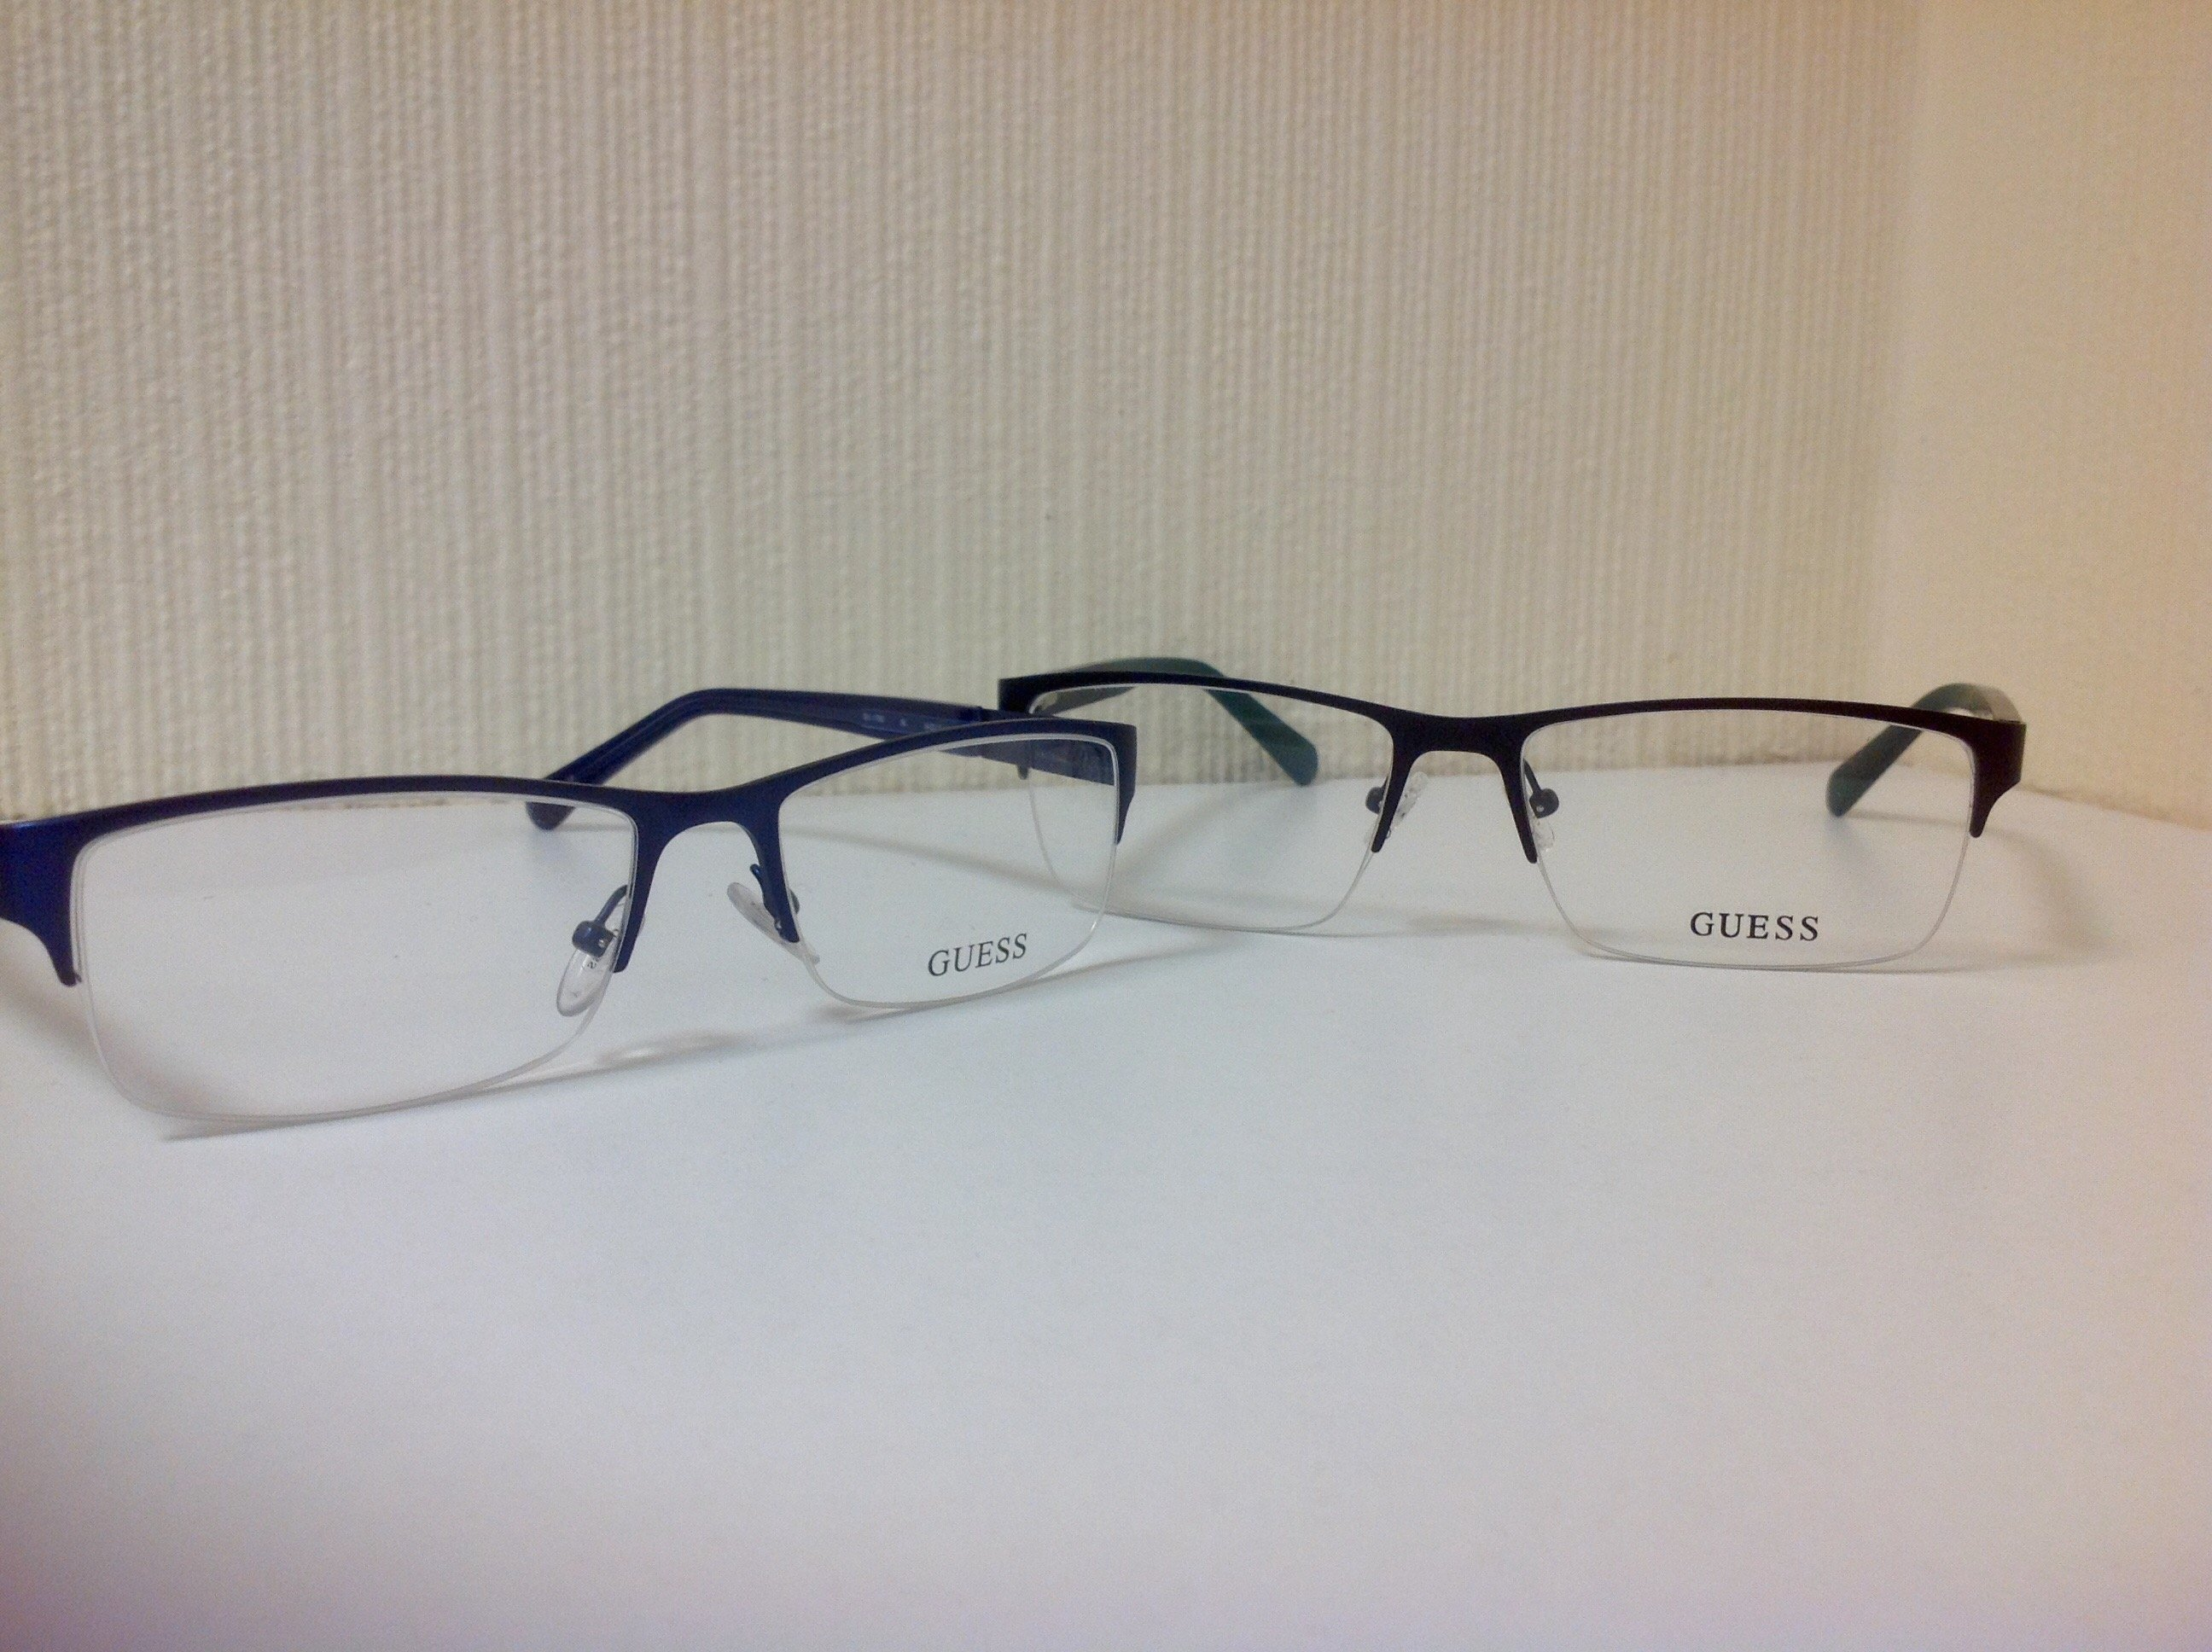 Half-rimmed Guess glasses